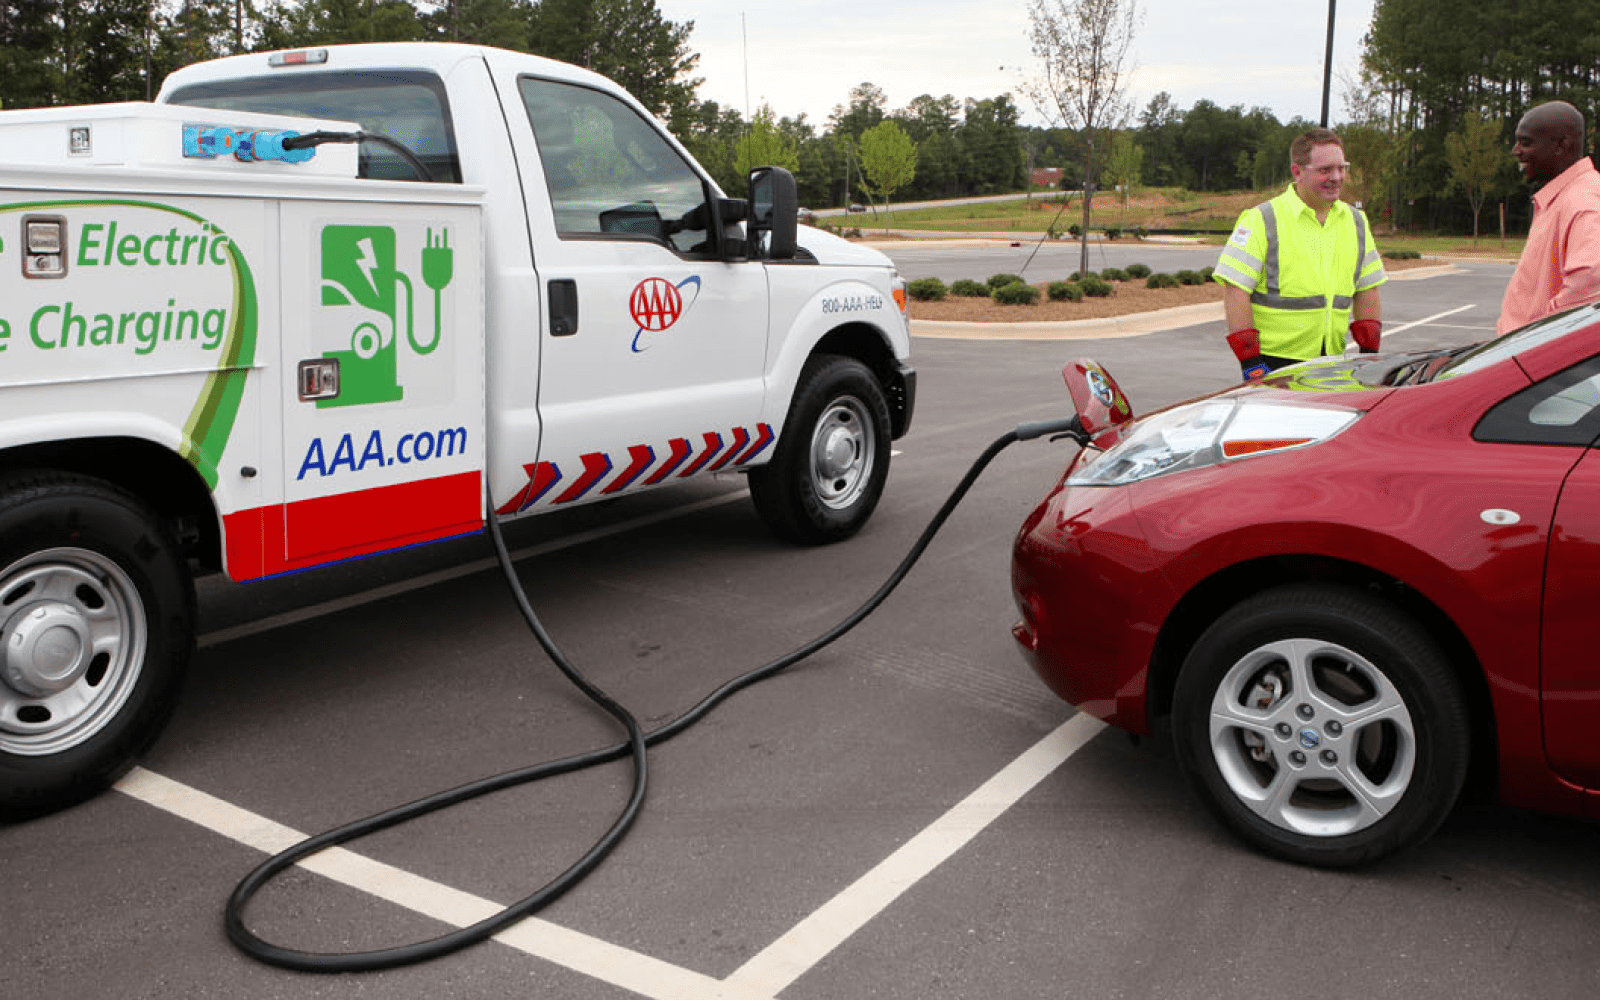 Can I Jumpstart my Electric Car?